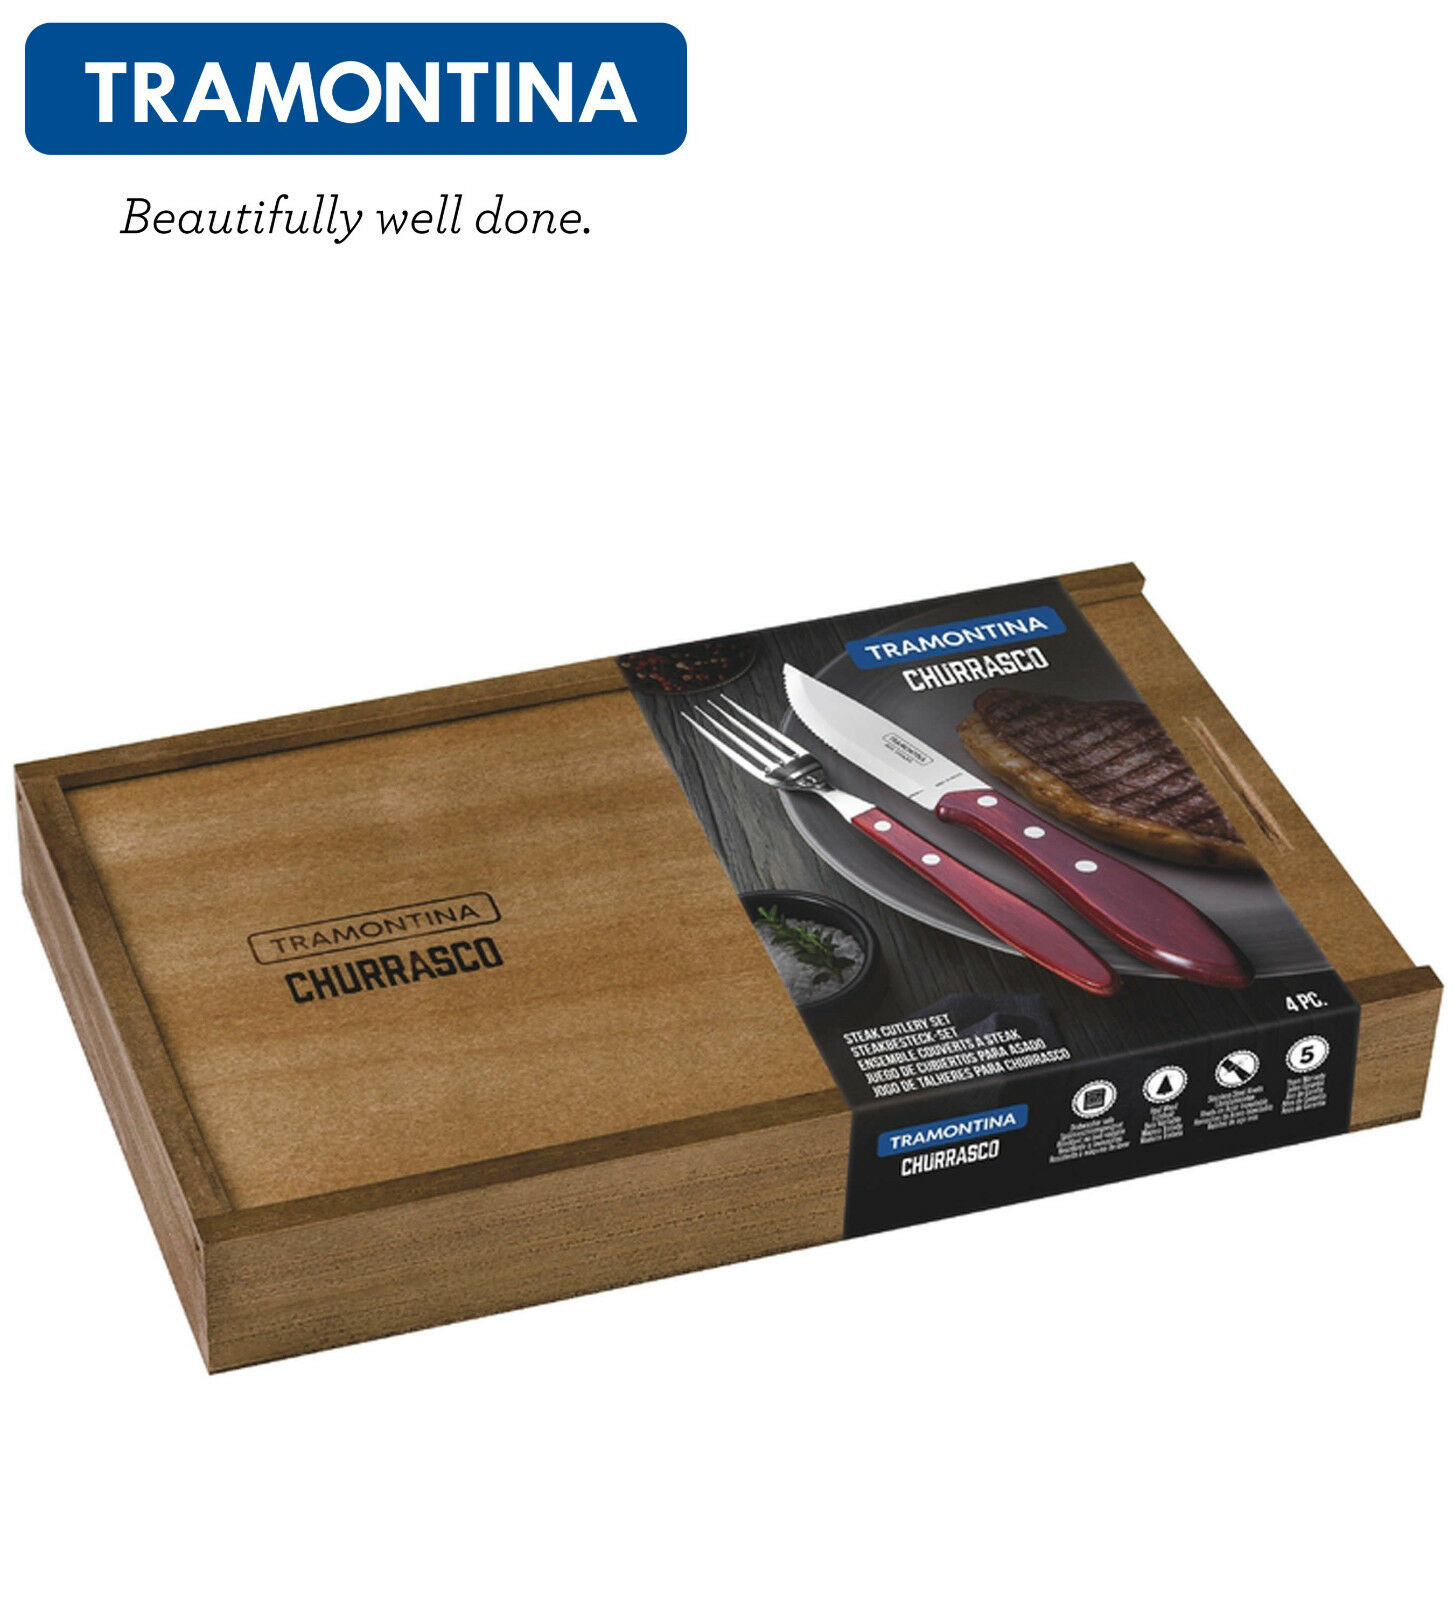 TRAMONTINA Steak Cutlery 4Ps.Jumbo Steak Knife Fork Churrasco PREMIUM FANDAGO